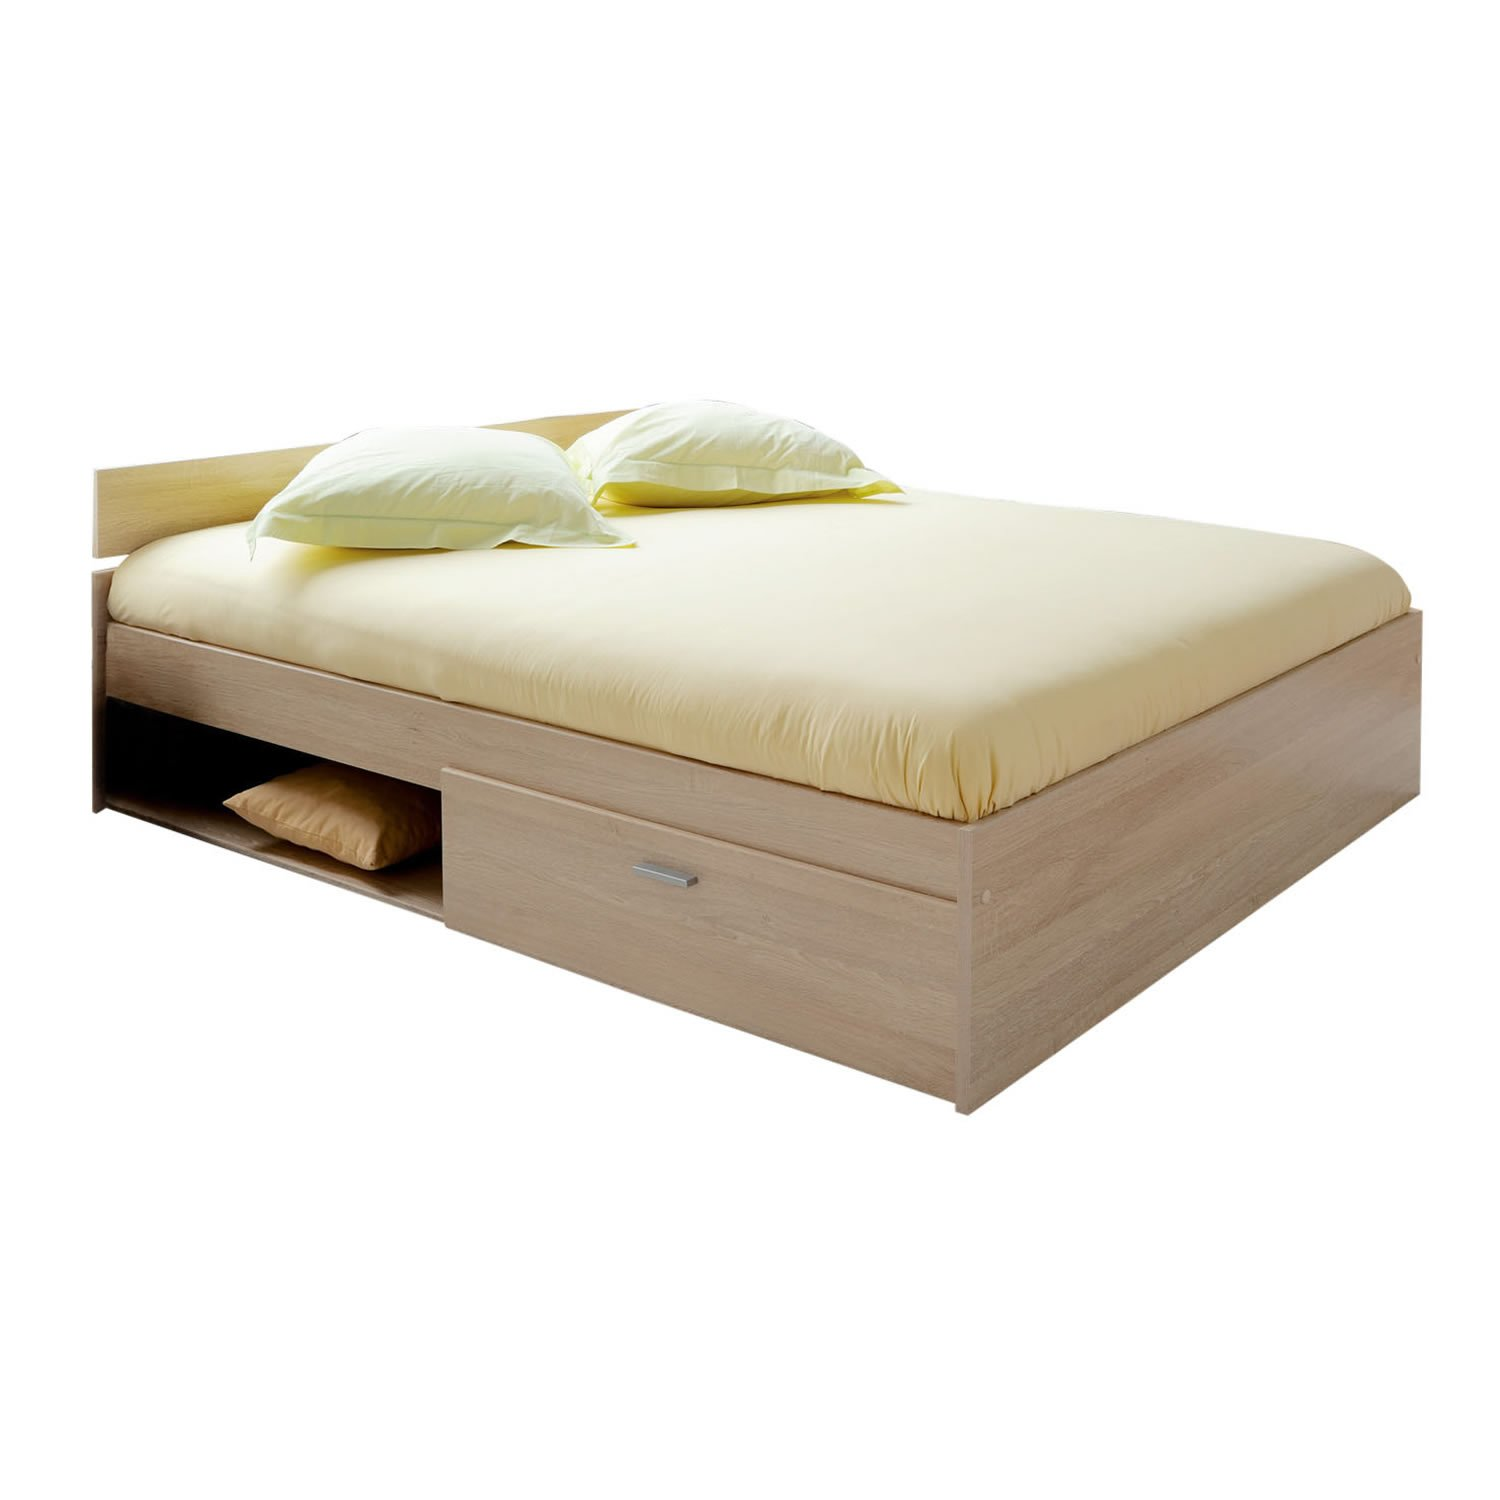 Queen low profile bed best platform bed twin bed low for Queen bed frame